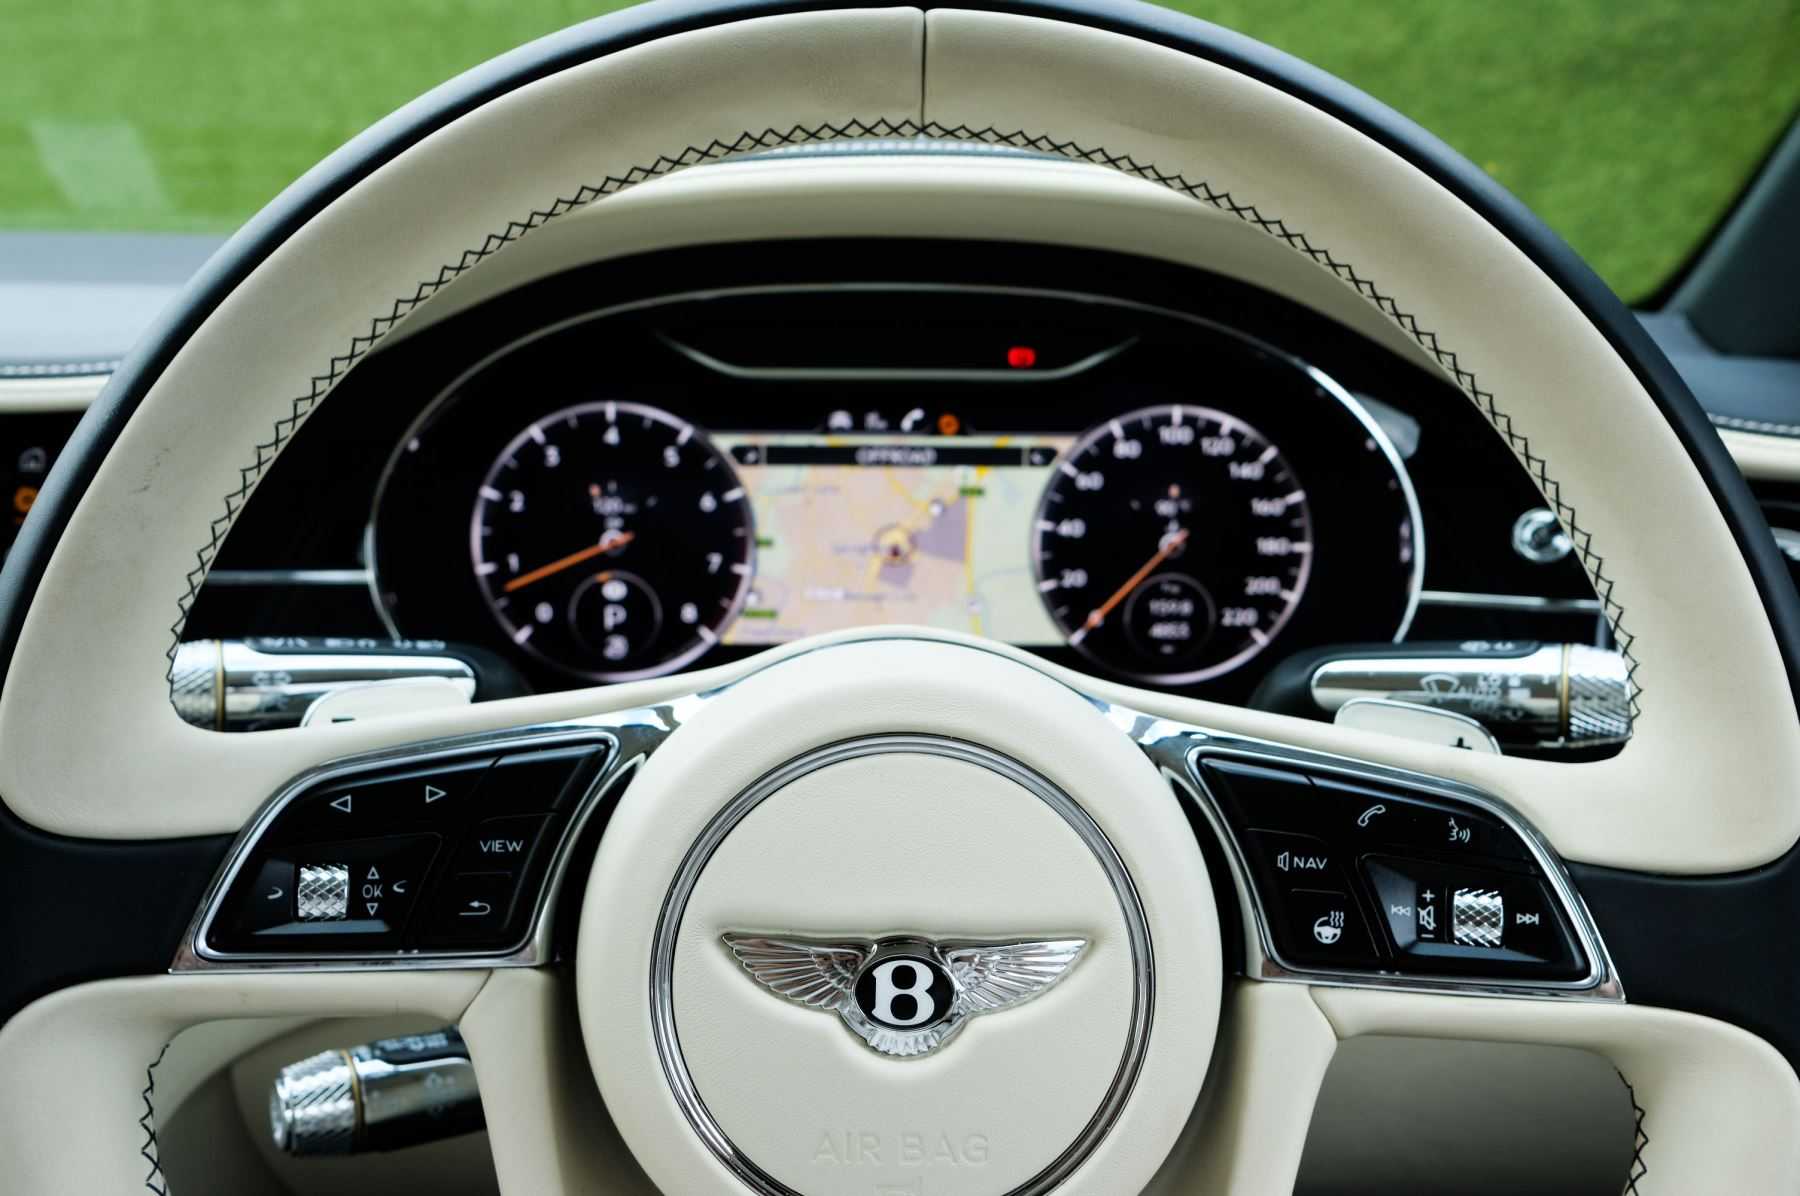 Bentley Continental GT 6.0 W12 1st Edition - Comfort Seating - Touring Specification image 15